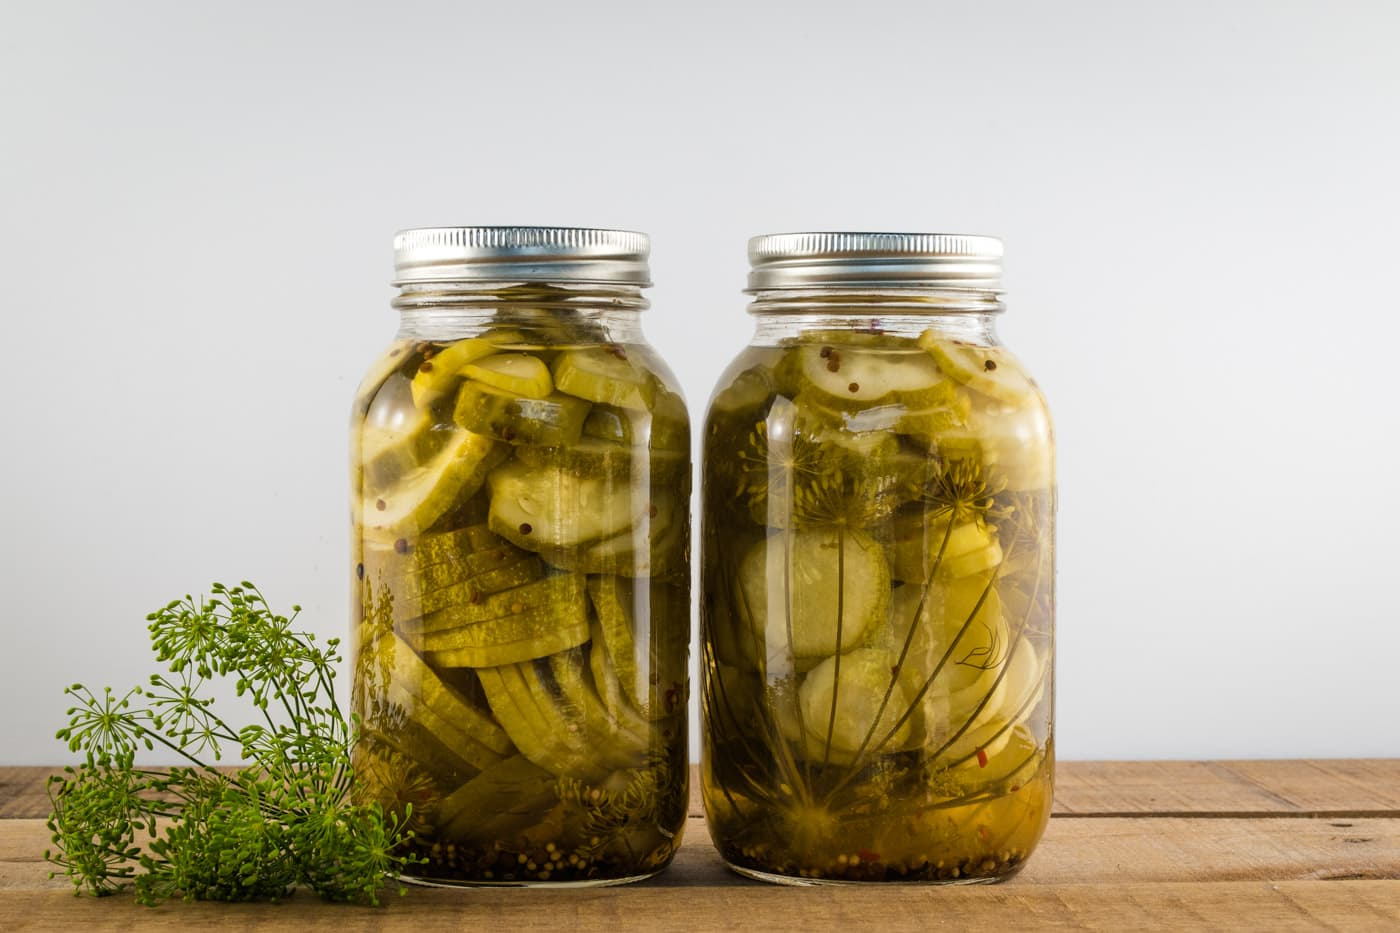 Sliced round dill pickles perfect for hamburgers in large canning jars with fresh dill next to them.